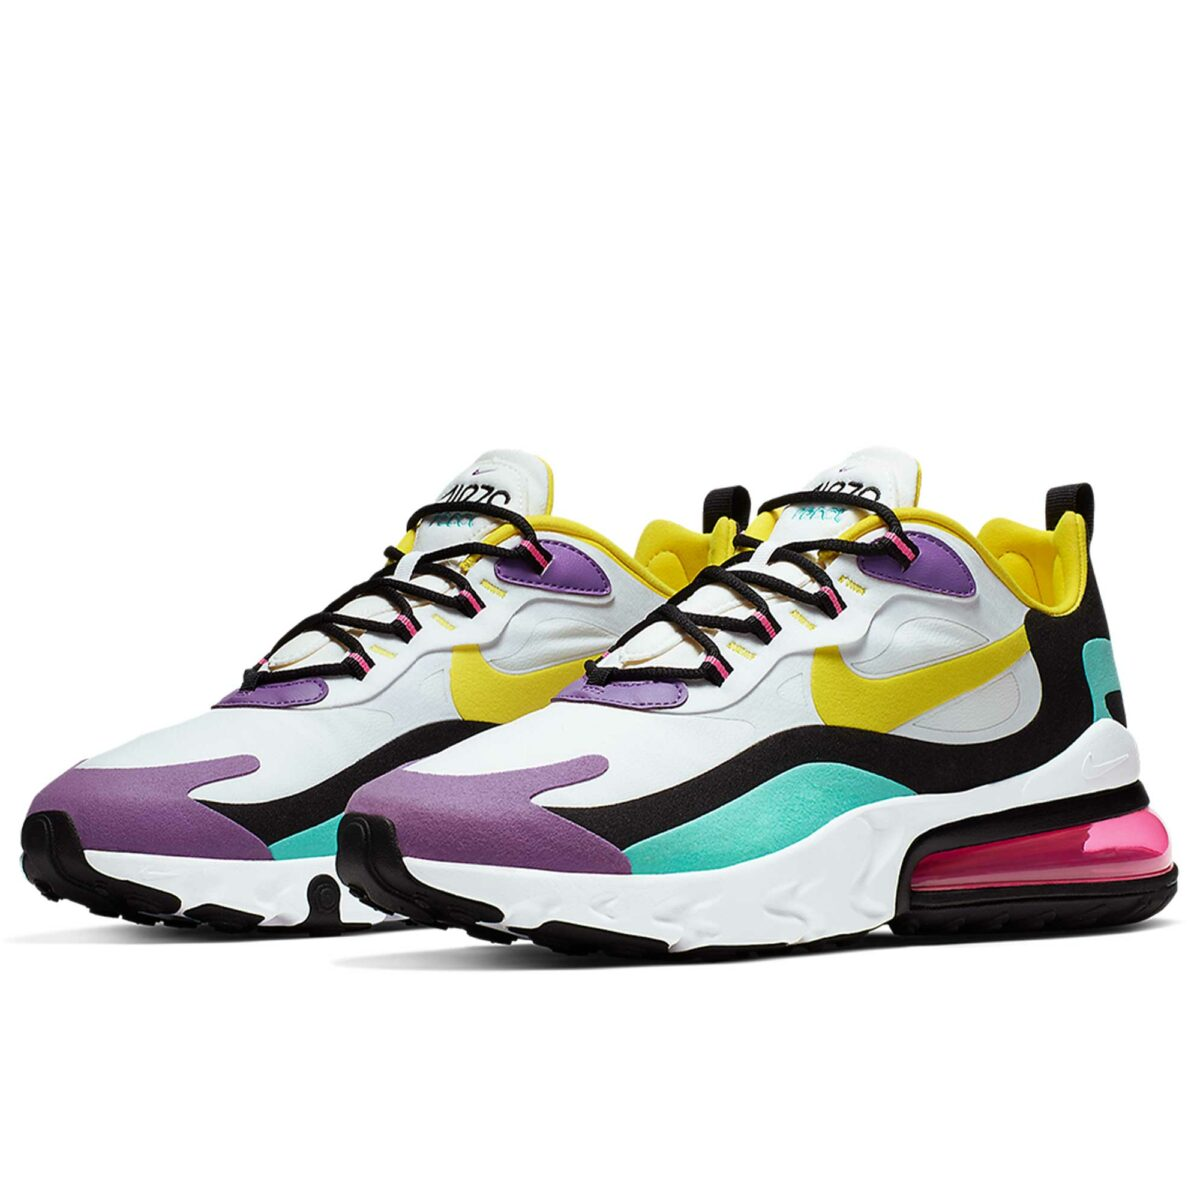 nike air max 270 react geometric abstract AO4971_101 купить